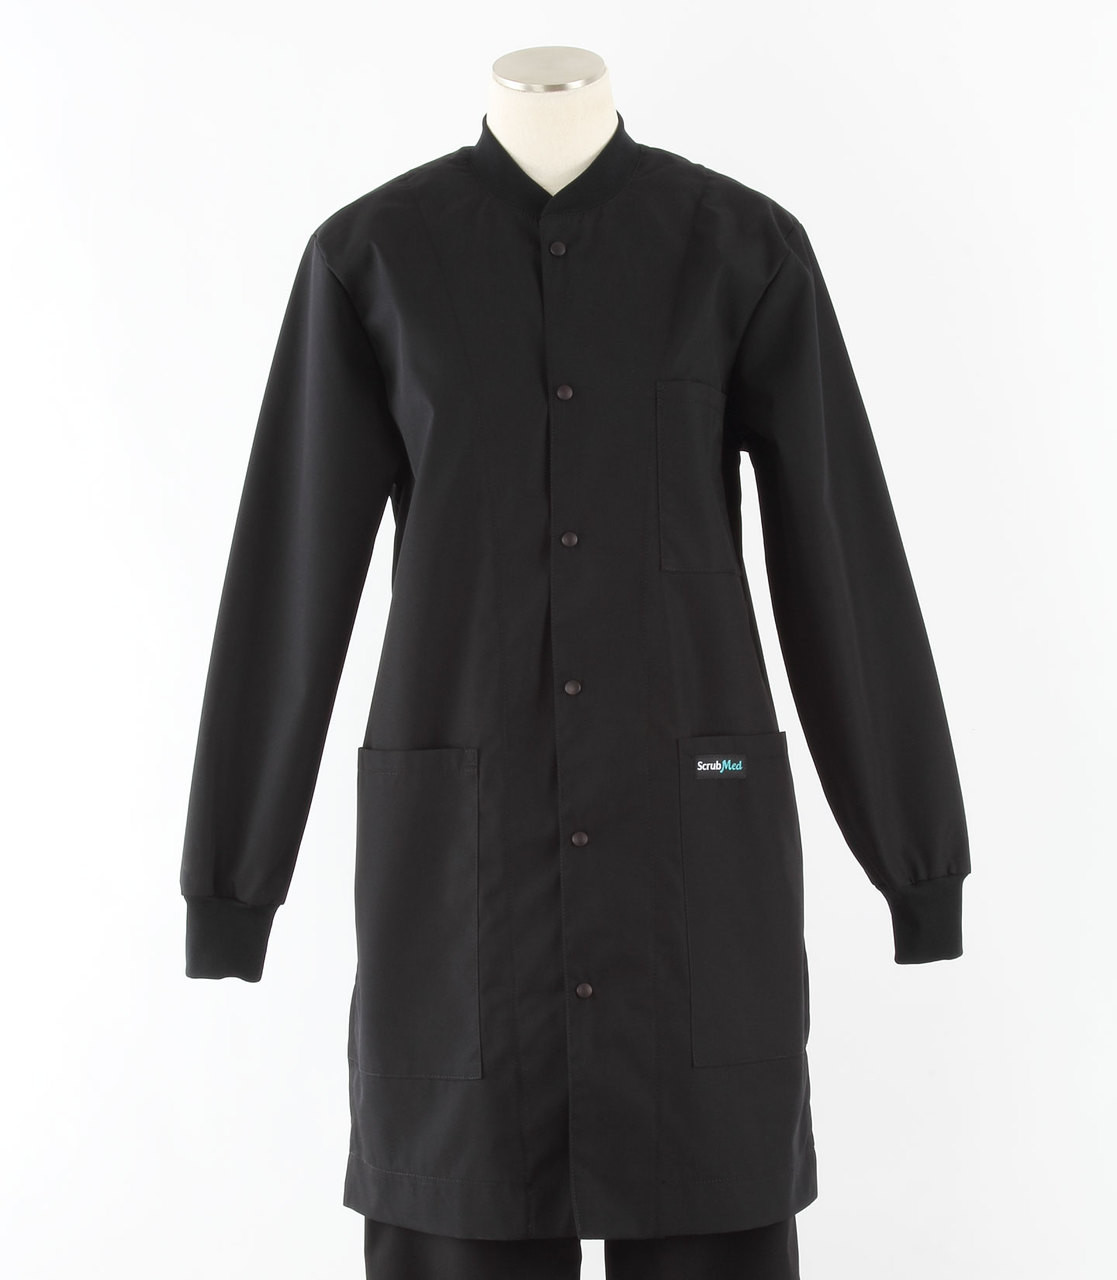 a786bed0e34038 scrub med womens black crew neck lab coat